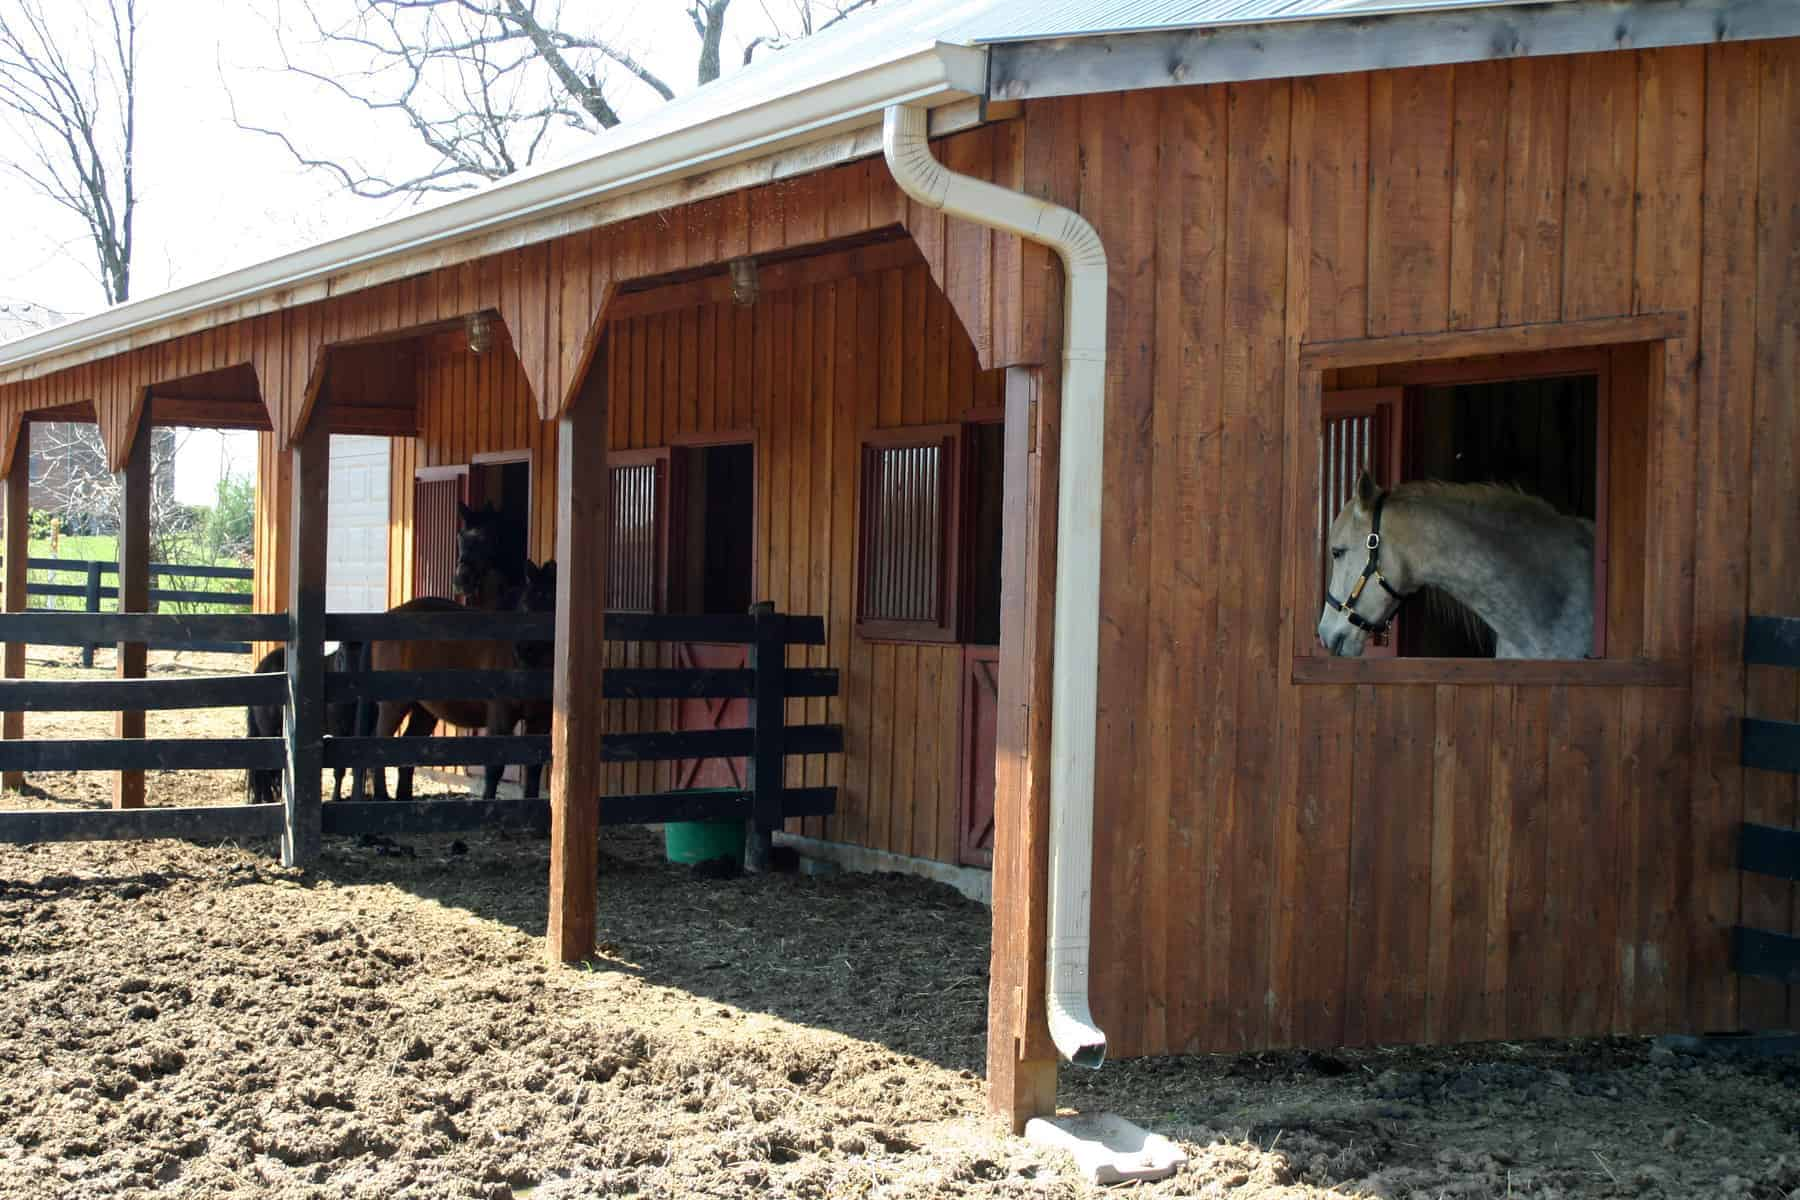 Budget Barn Design - The Horse